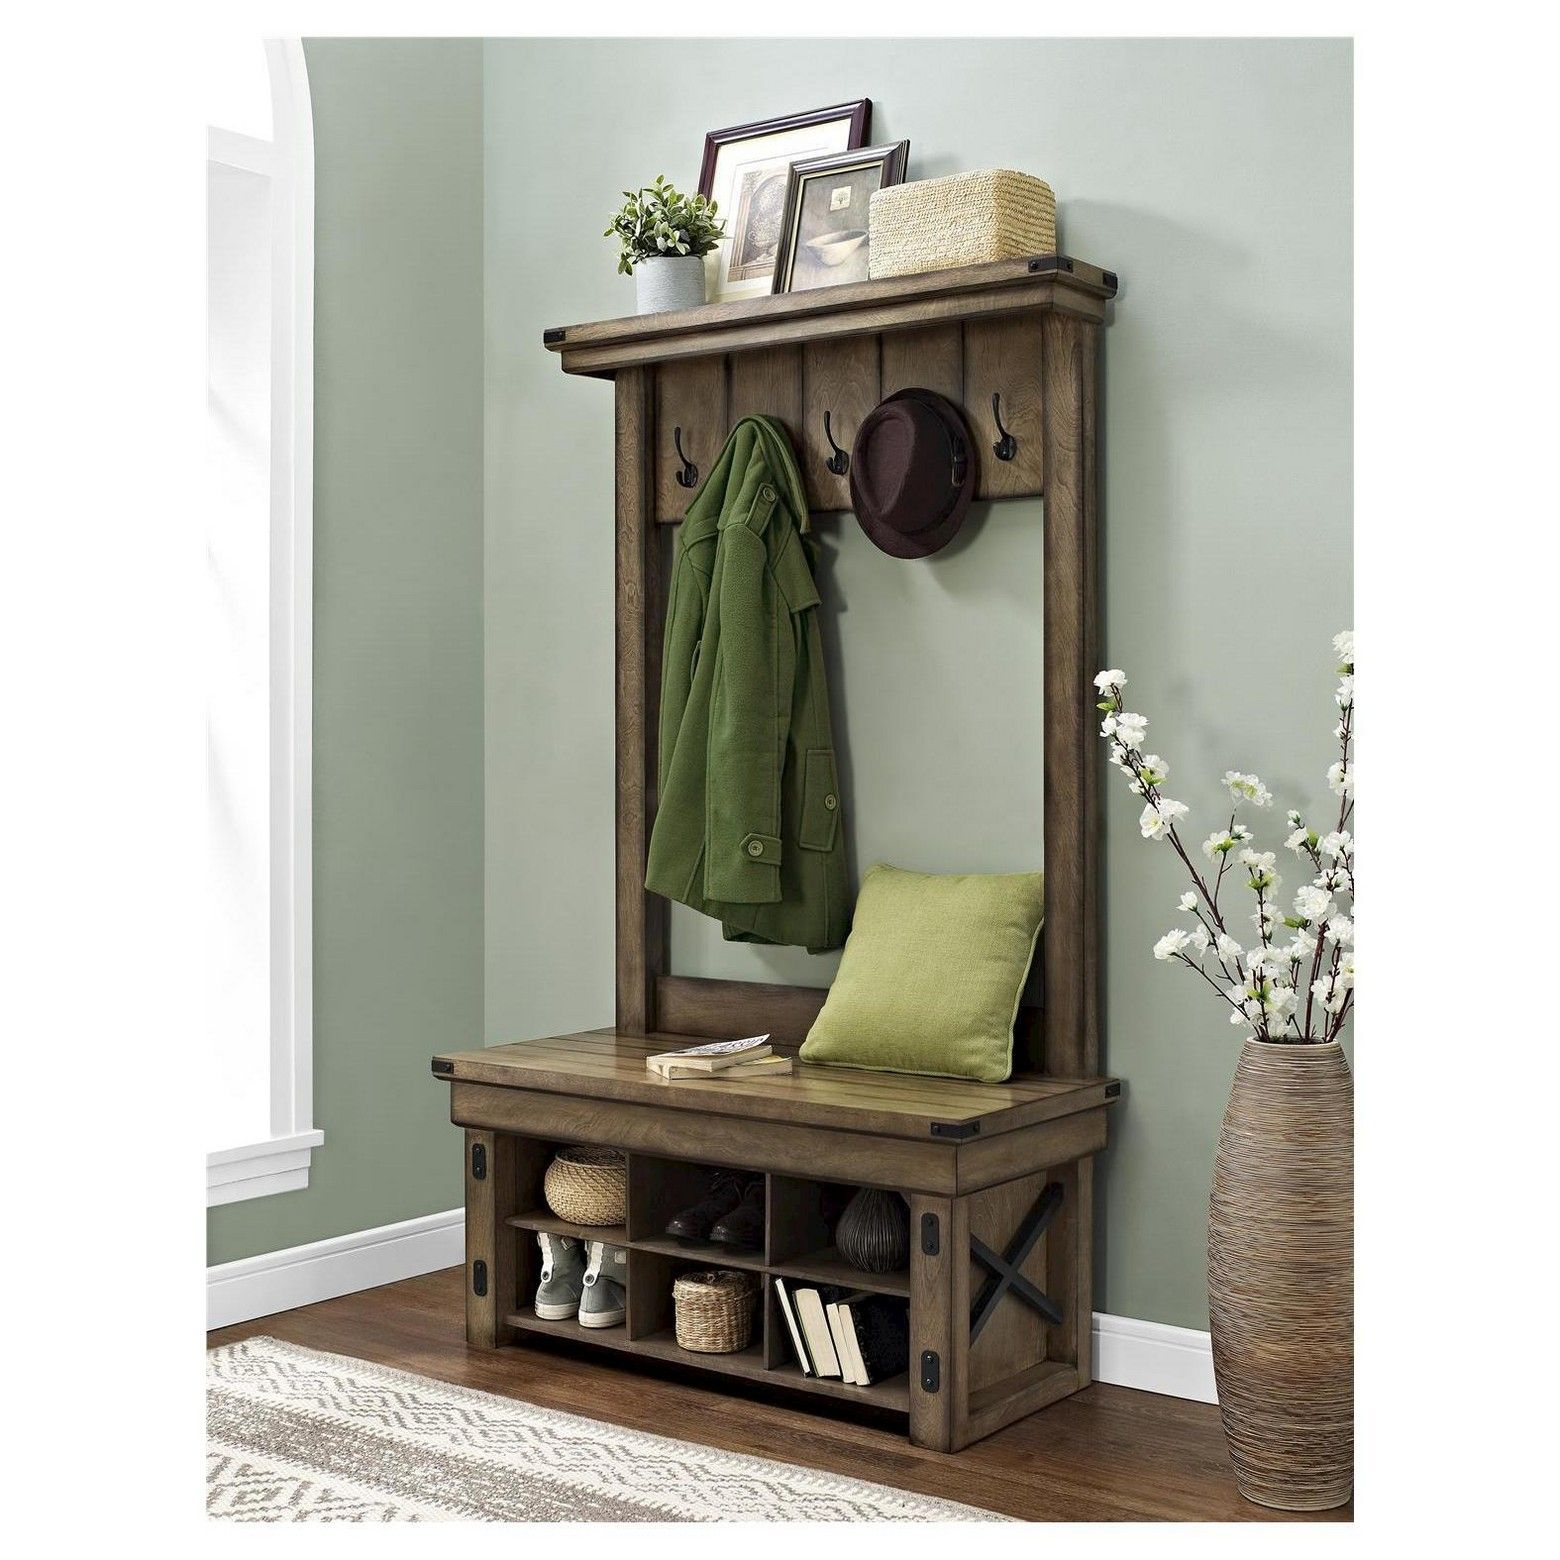 Awesome Wood Hall Tree with Storage Bench